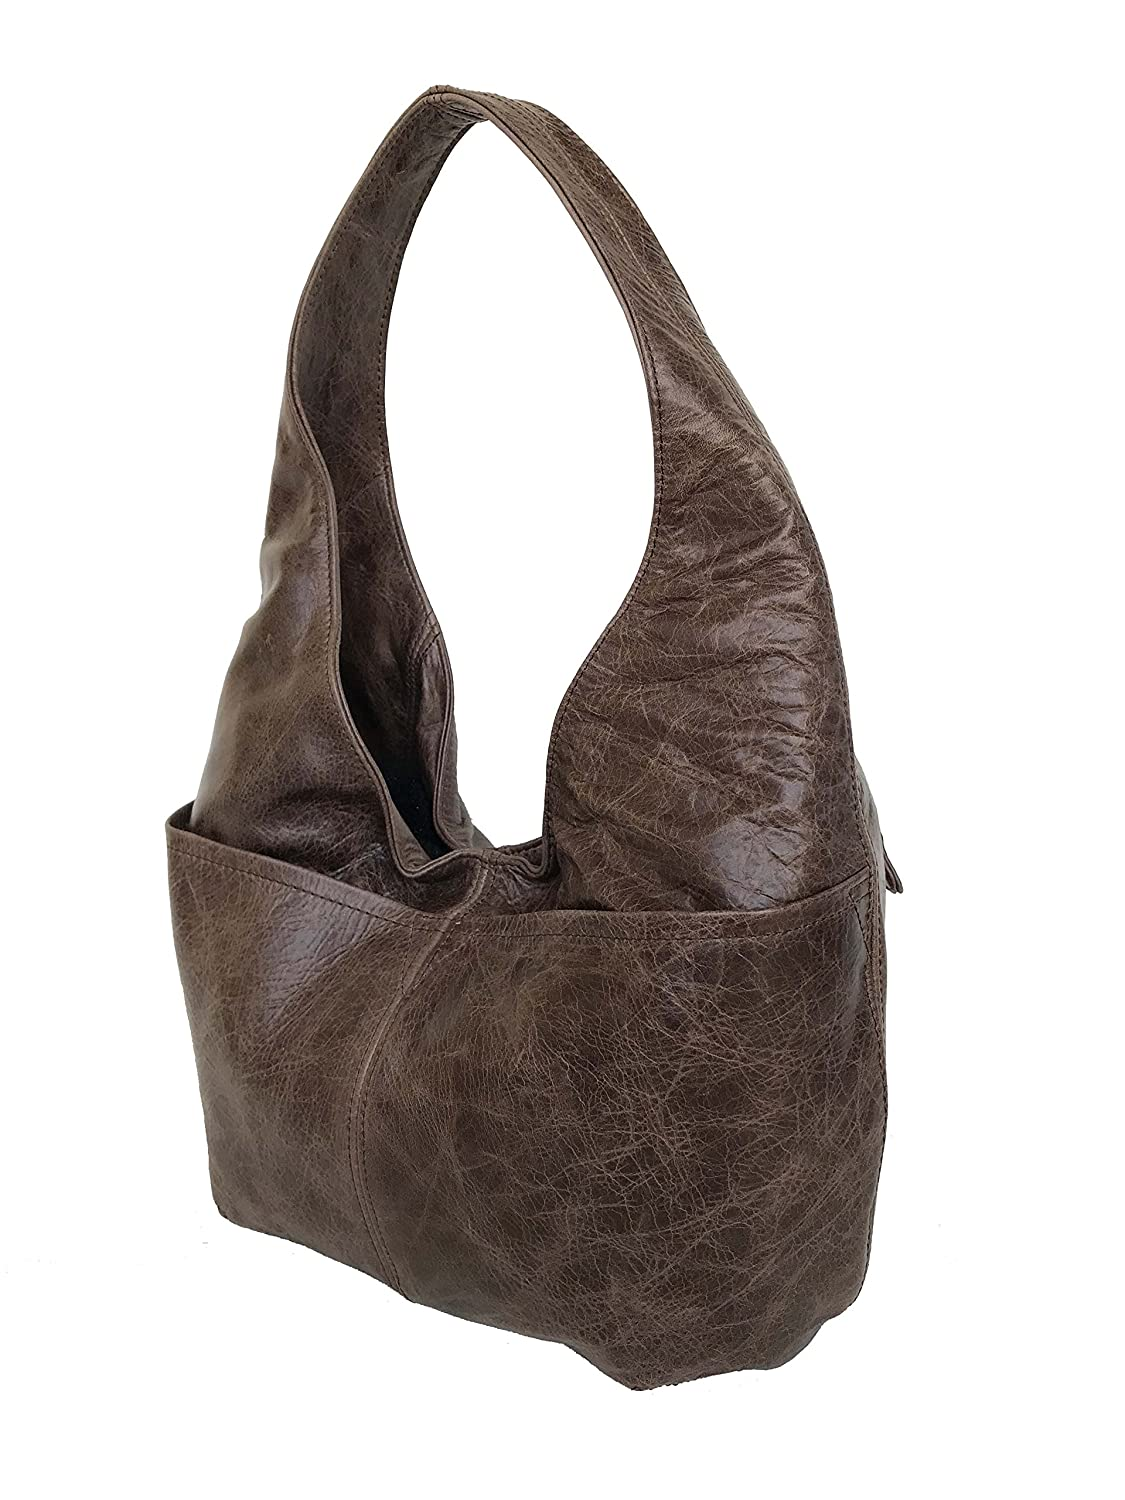 e9f004224709 Amazon.com  Fgalaze Distressed Brown Leather Hobo Bag w Pockets ...